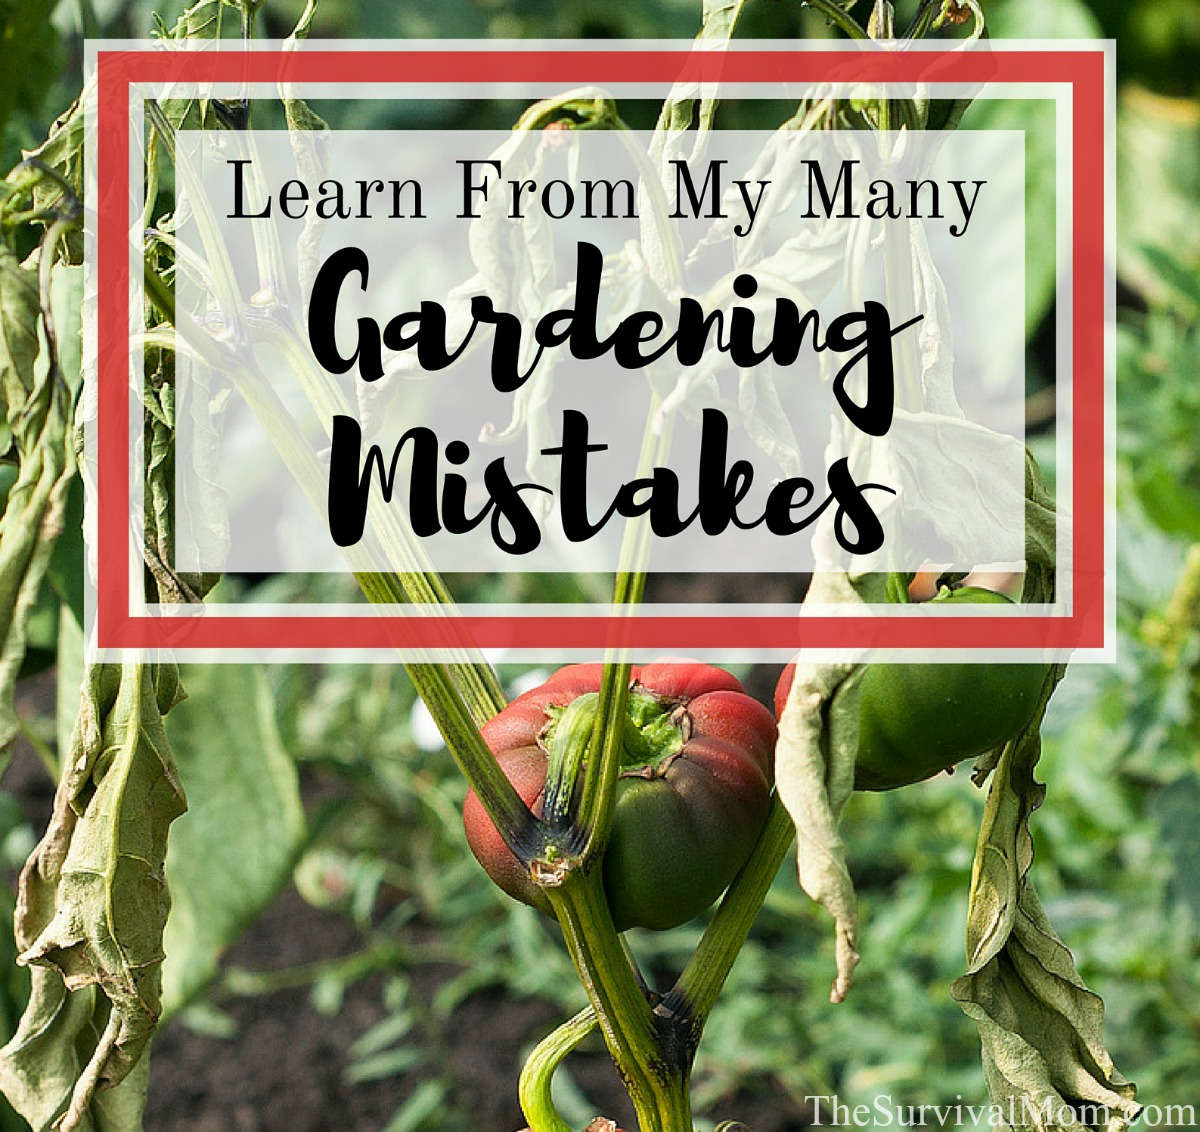 Learn From My Many Gardening Mistakes